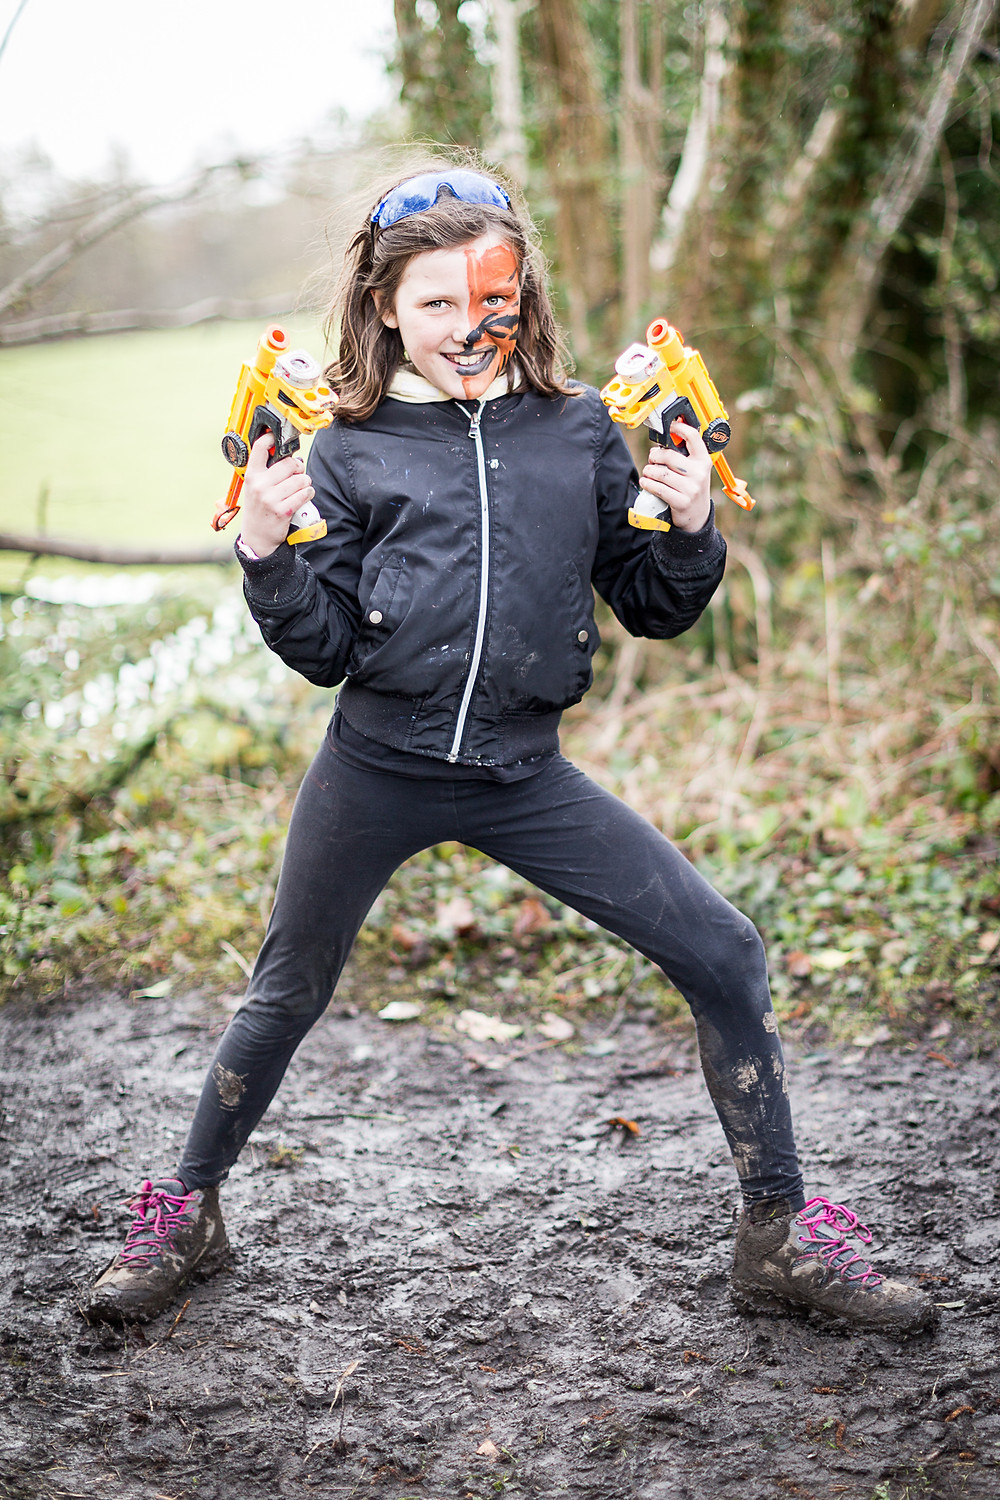 Girl with two nerf guns. John Woo & Lara Croft eat your heart out!